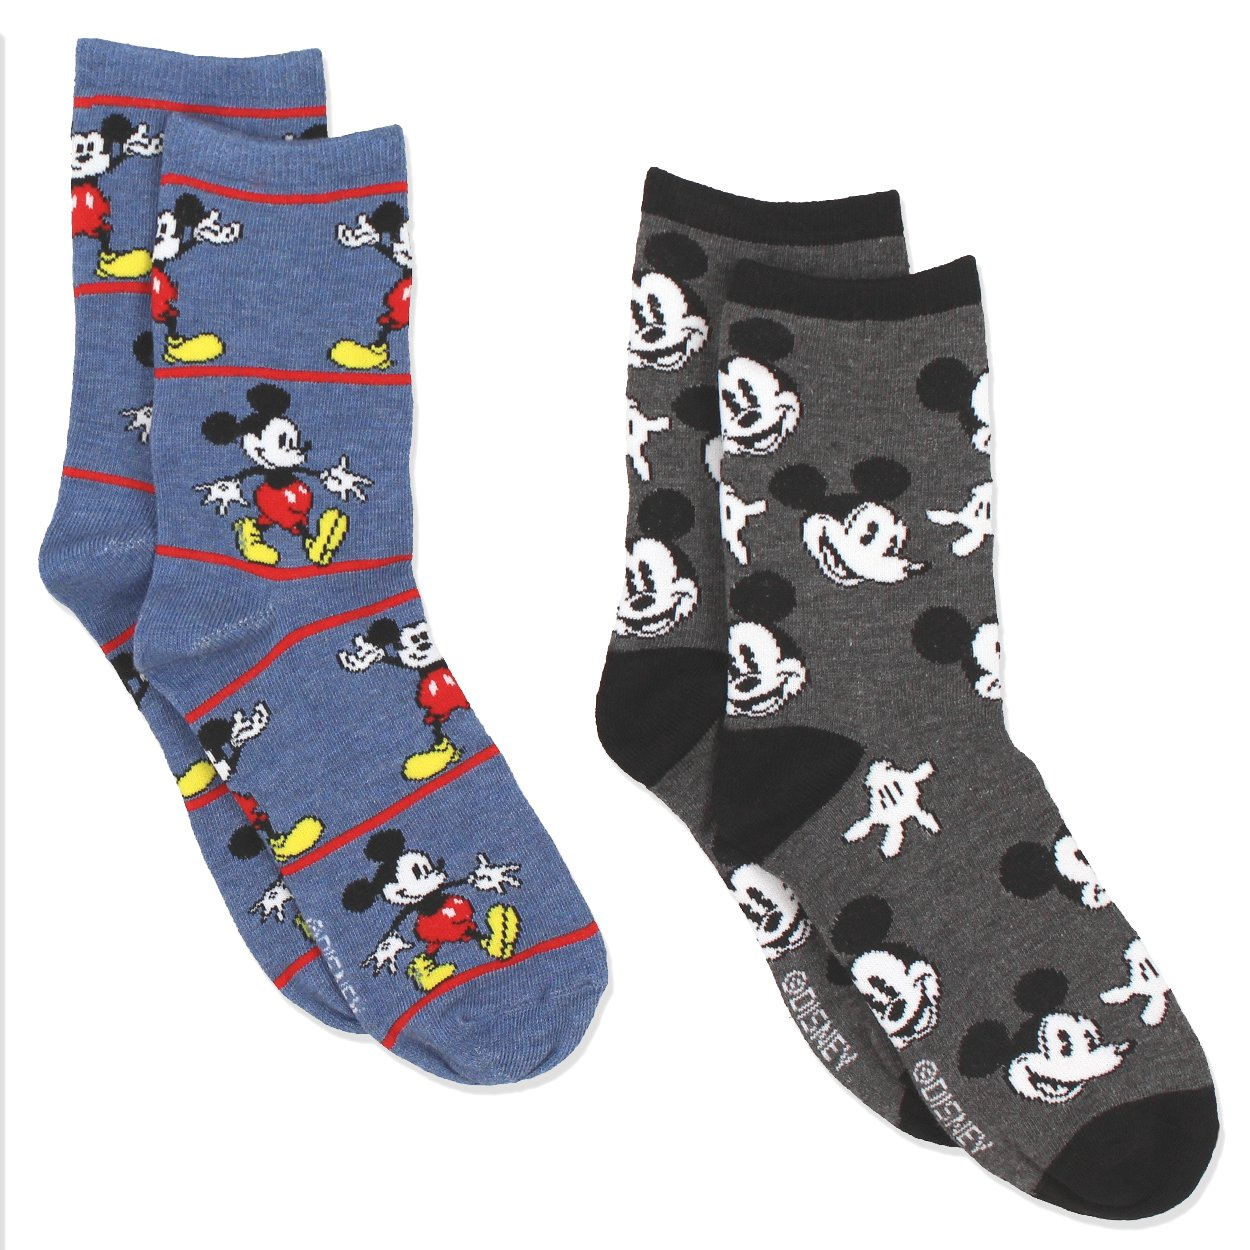 Mickey Mouse Womens 2 pack Socks (9-11 Womens (Shoe: 4-10), Crew Blue/Grey)